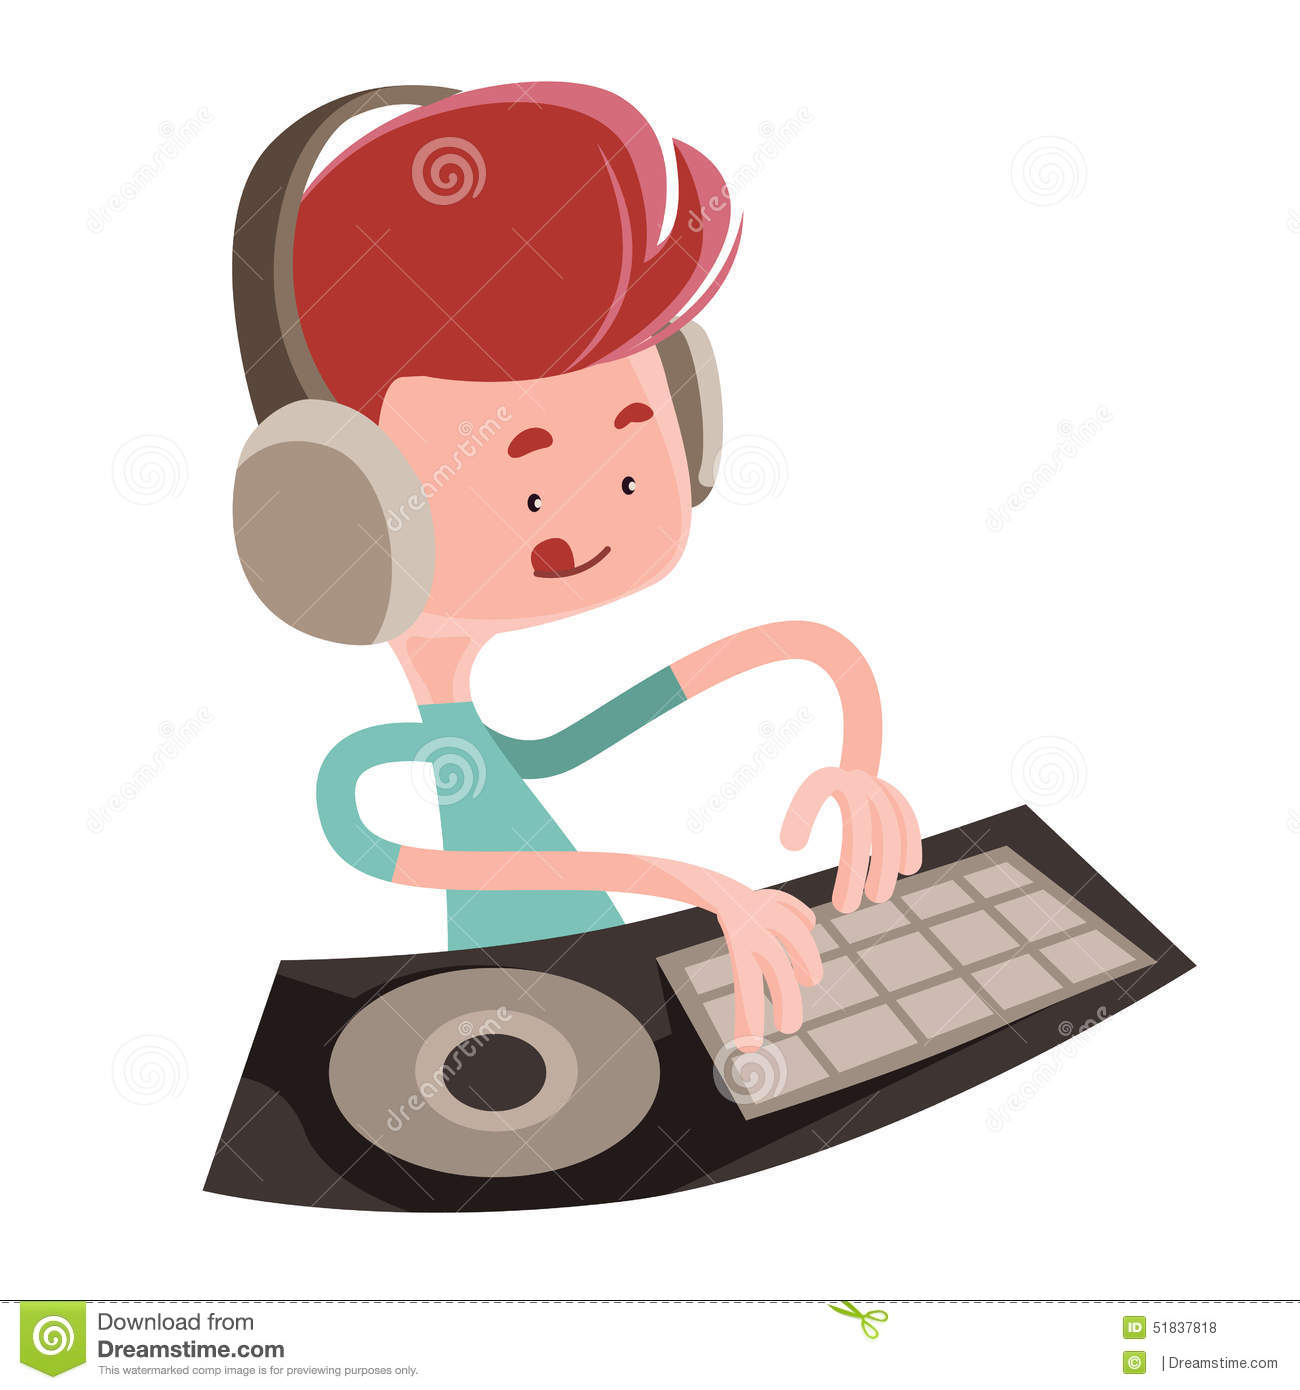 Dj Playing Music Beats Illustration Cartoon Character Stock Illustration Image 51837818